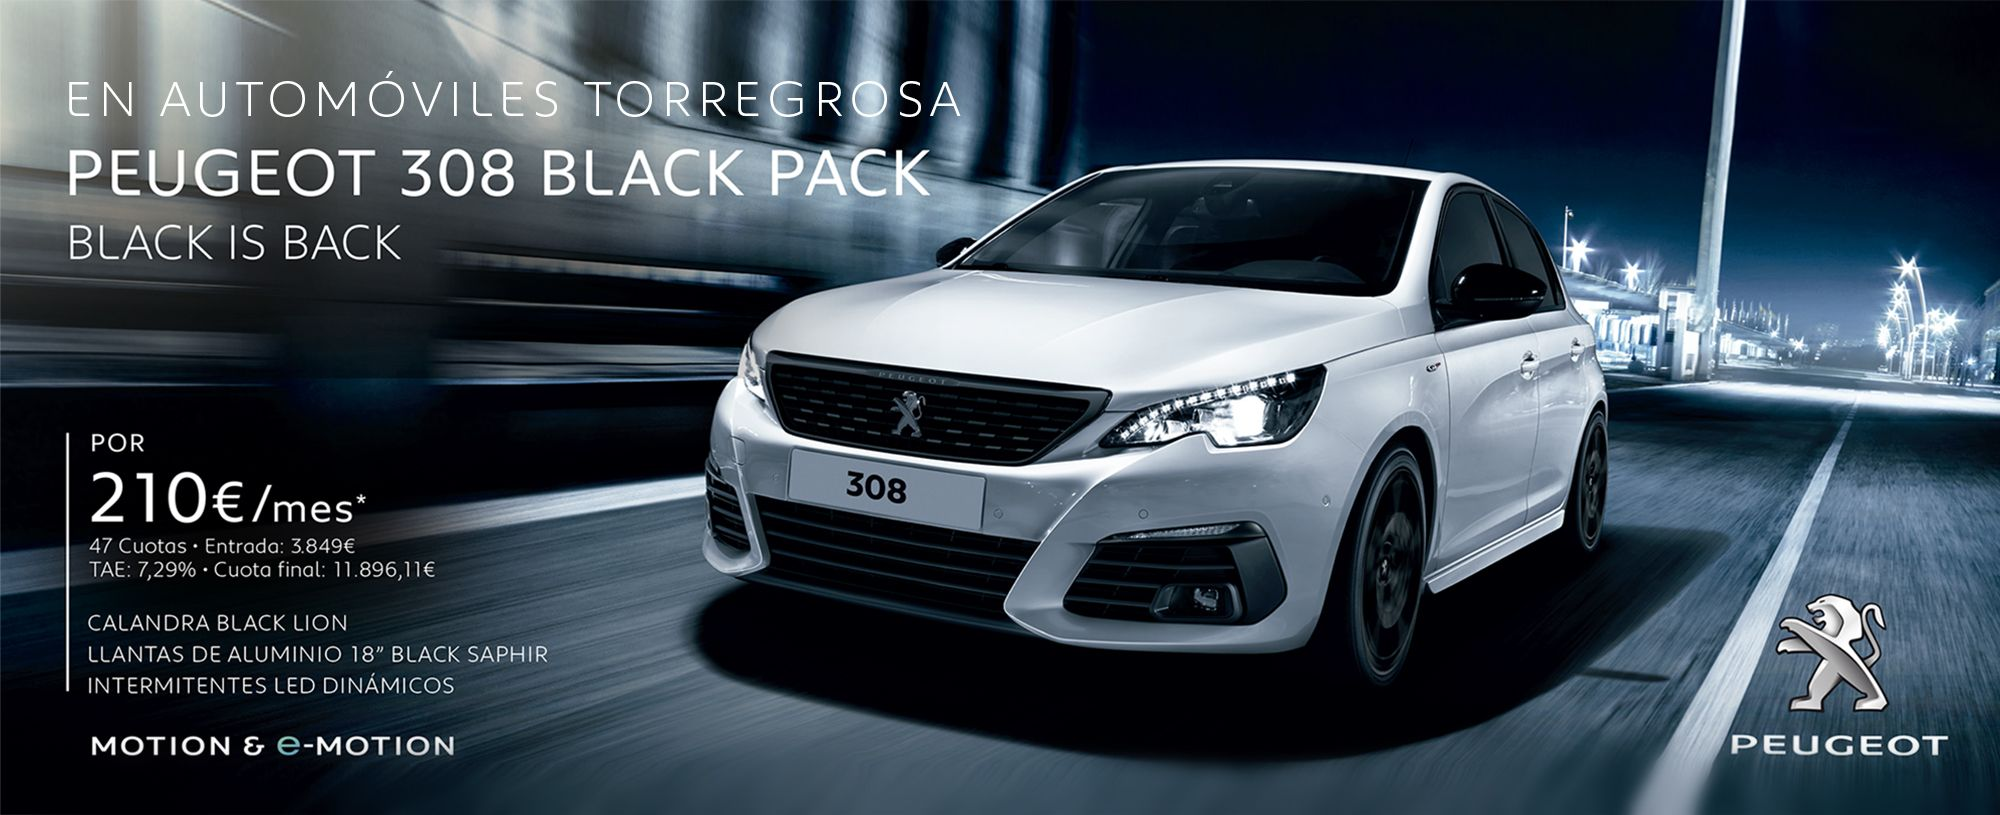 PEUGEOT 308 BLACK PACK BLACK IS BACK por 210€/mes*